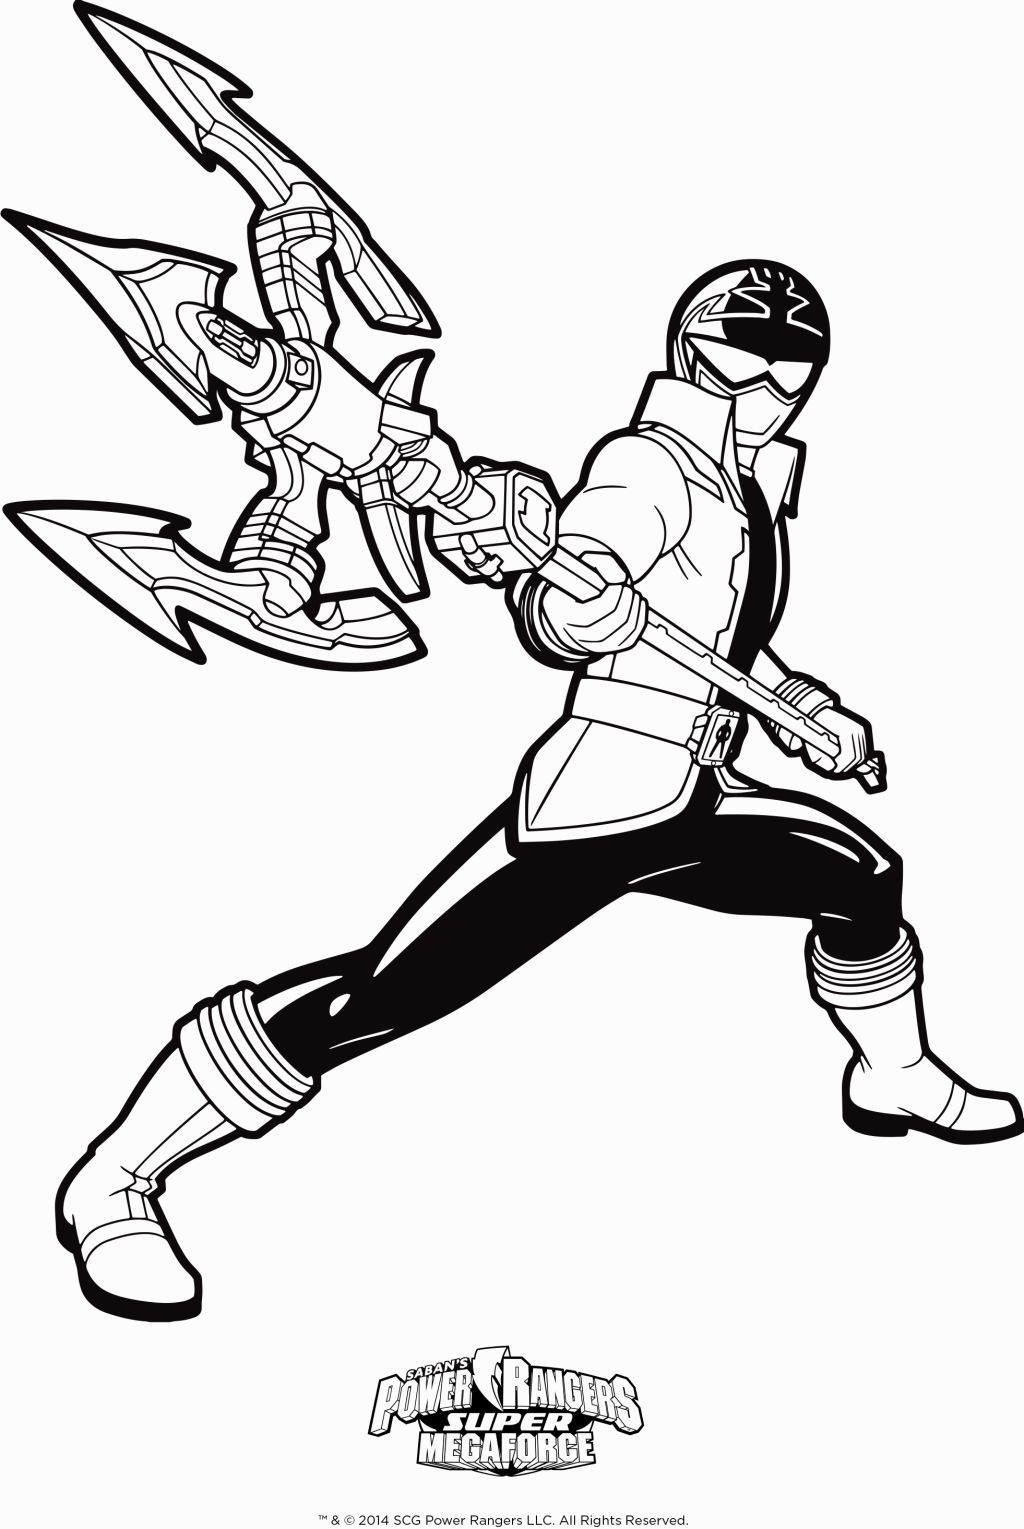 Free online coloring pages of power rangers - Explore Coloring Pages For Boys Power Rangers And More